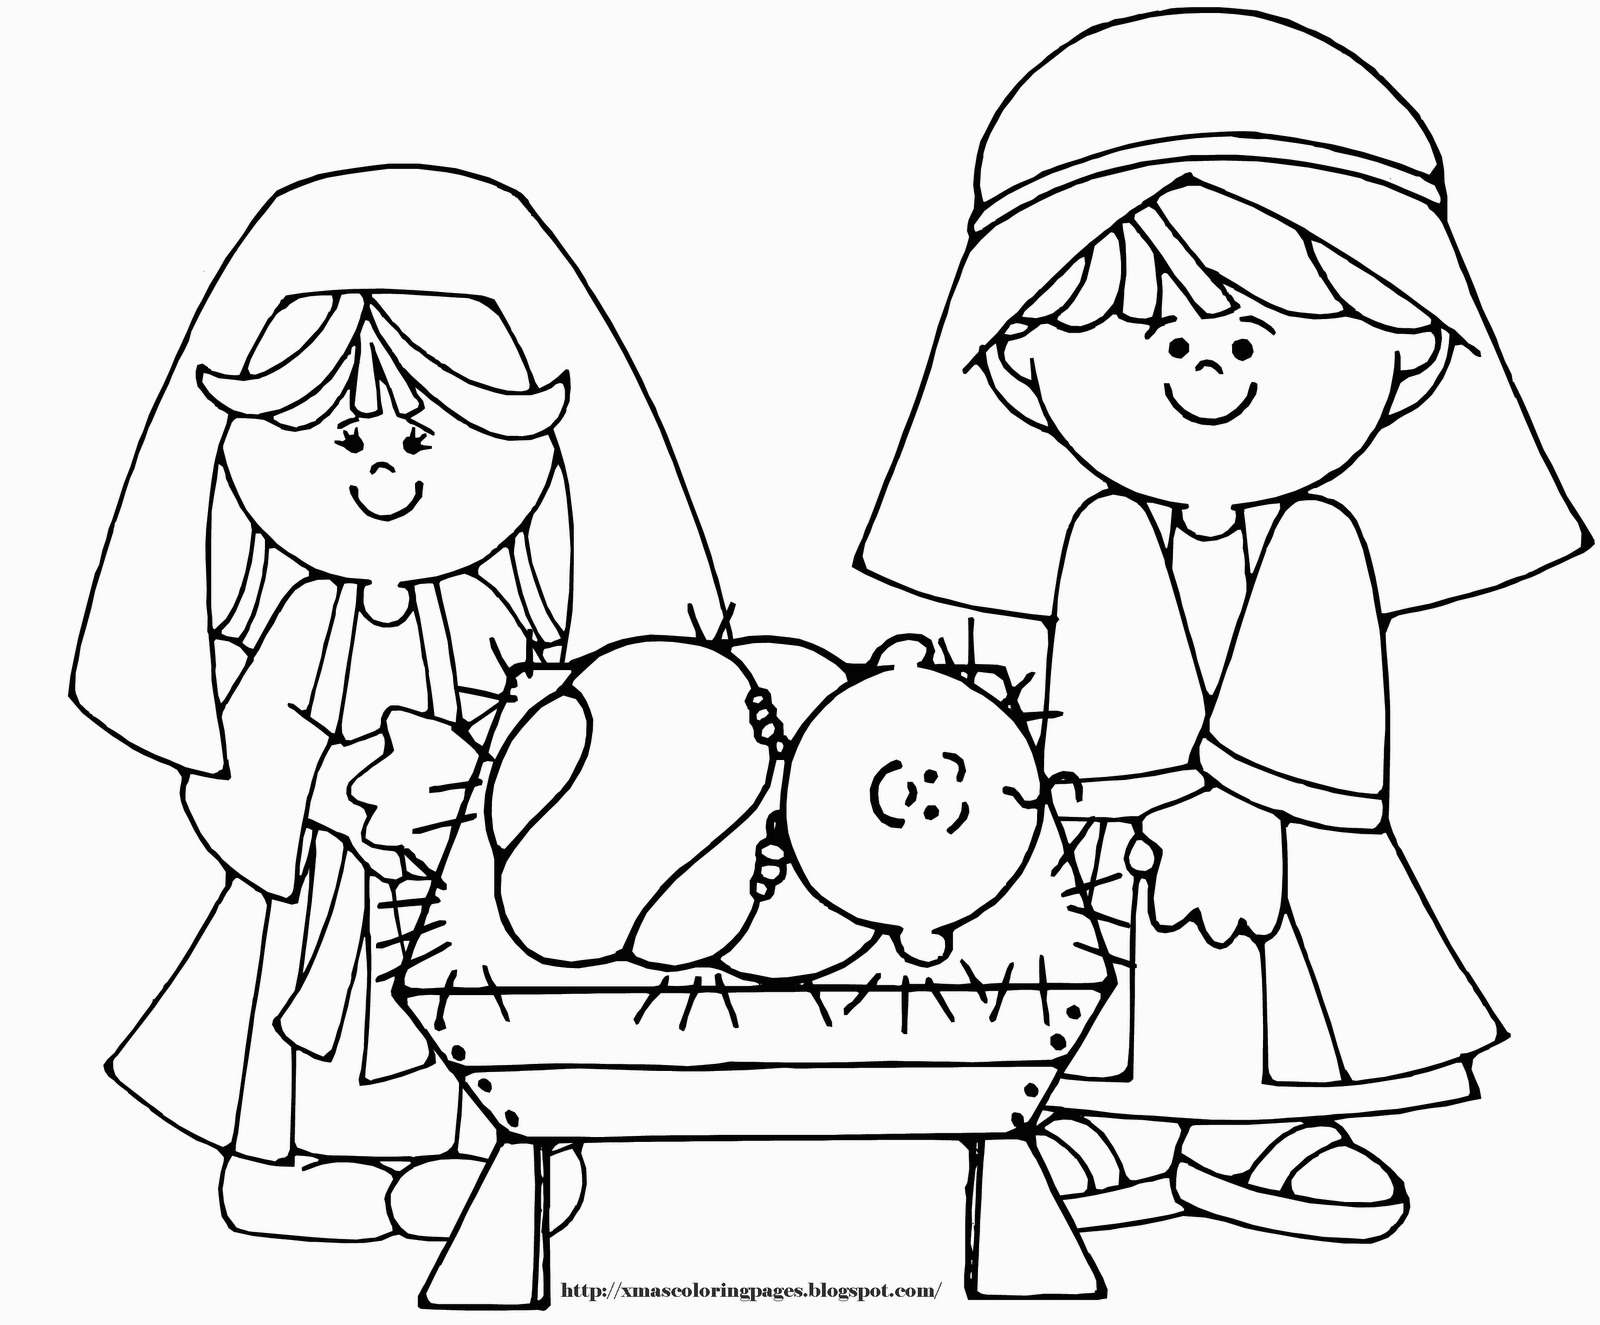 Jesus Christmas Coloring Pages Jesus Christmas Coloring Pages Ba In A Manger Grig3 For Ba Jesus